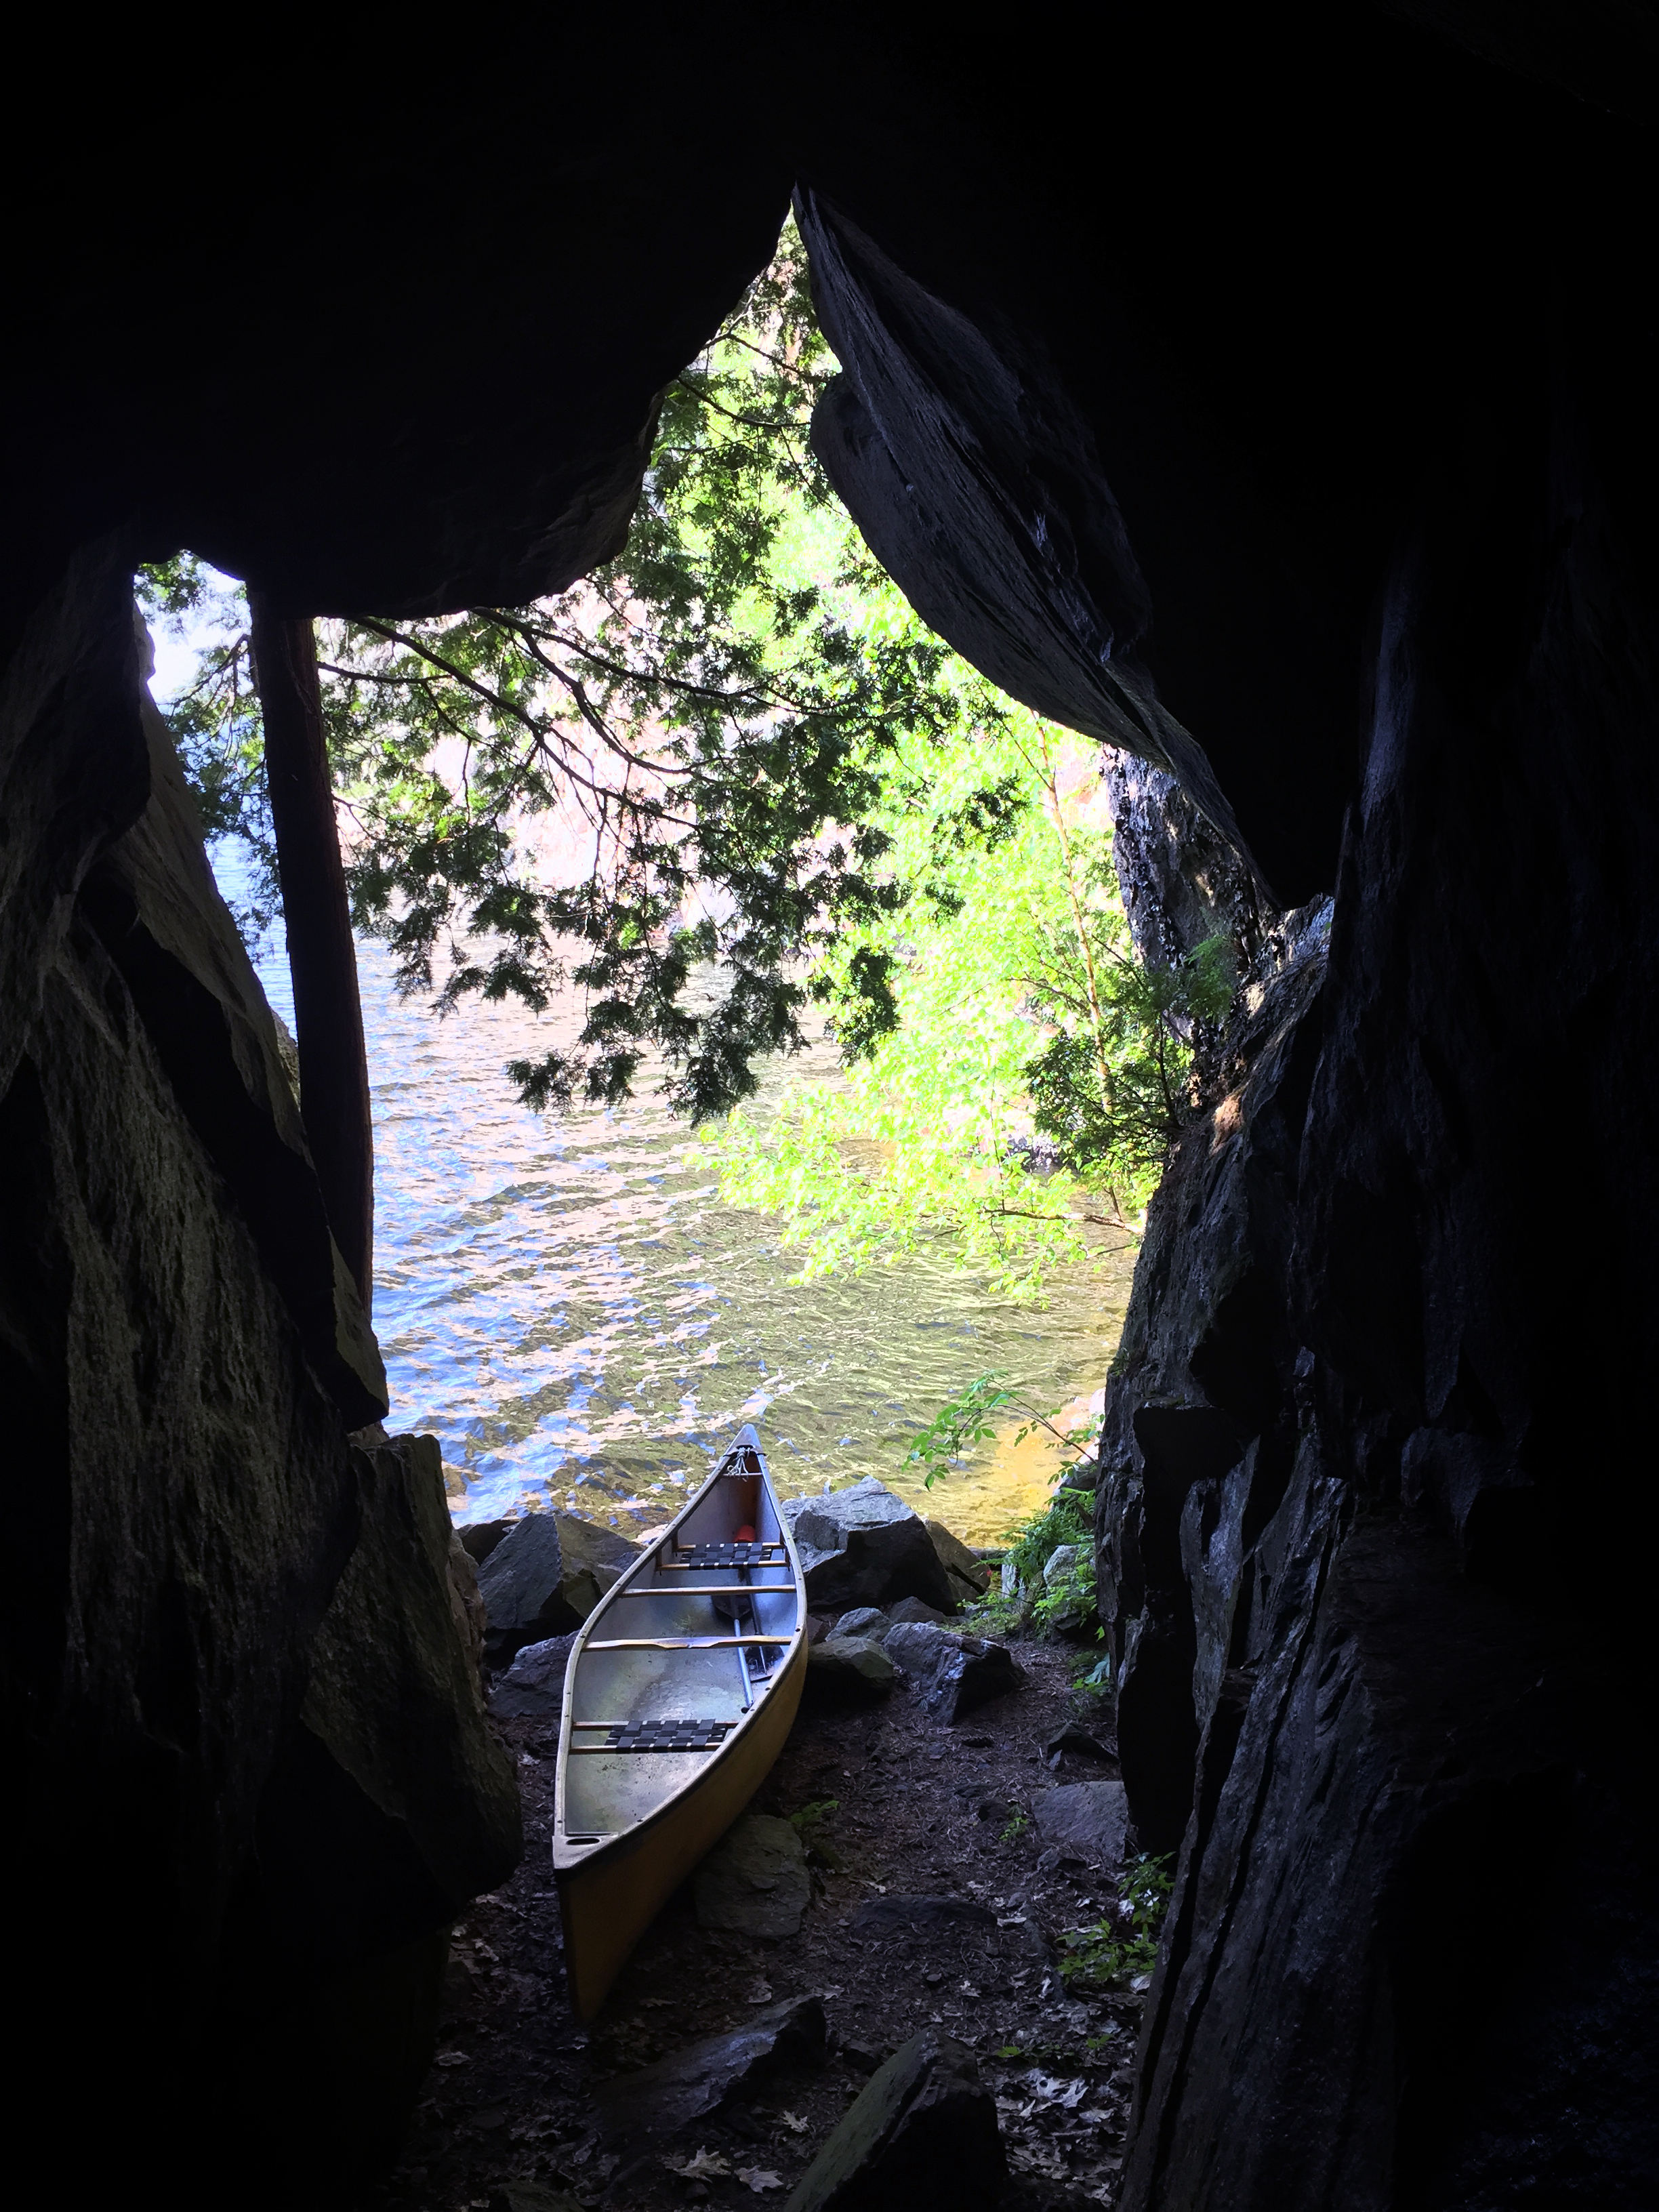 A canoe in a cave